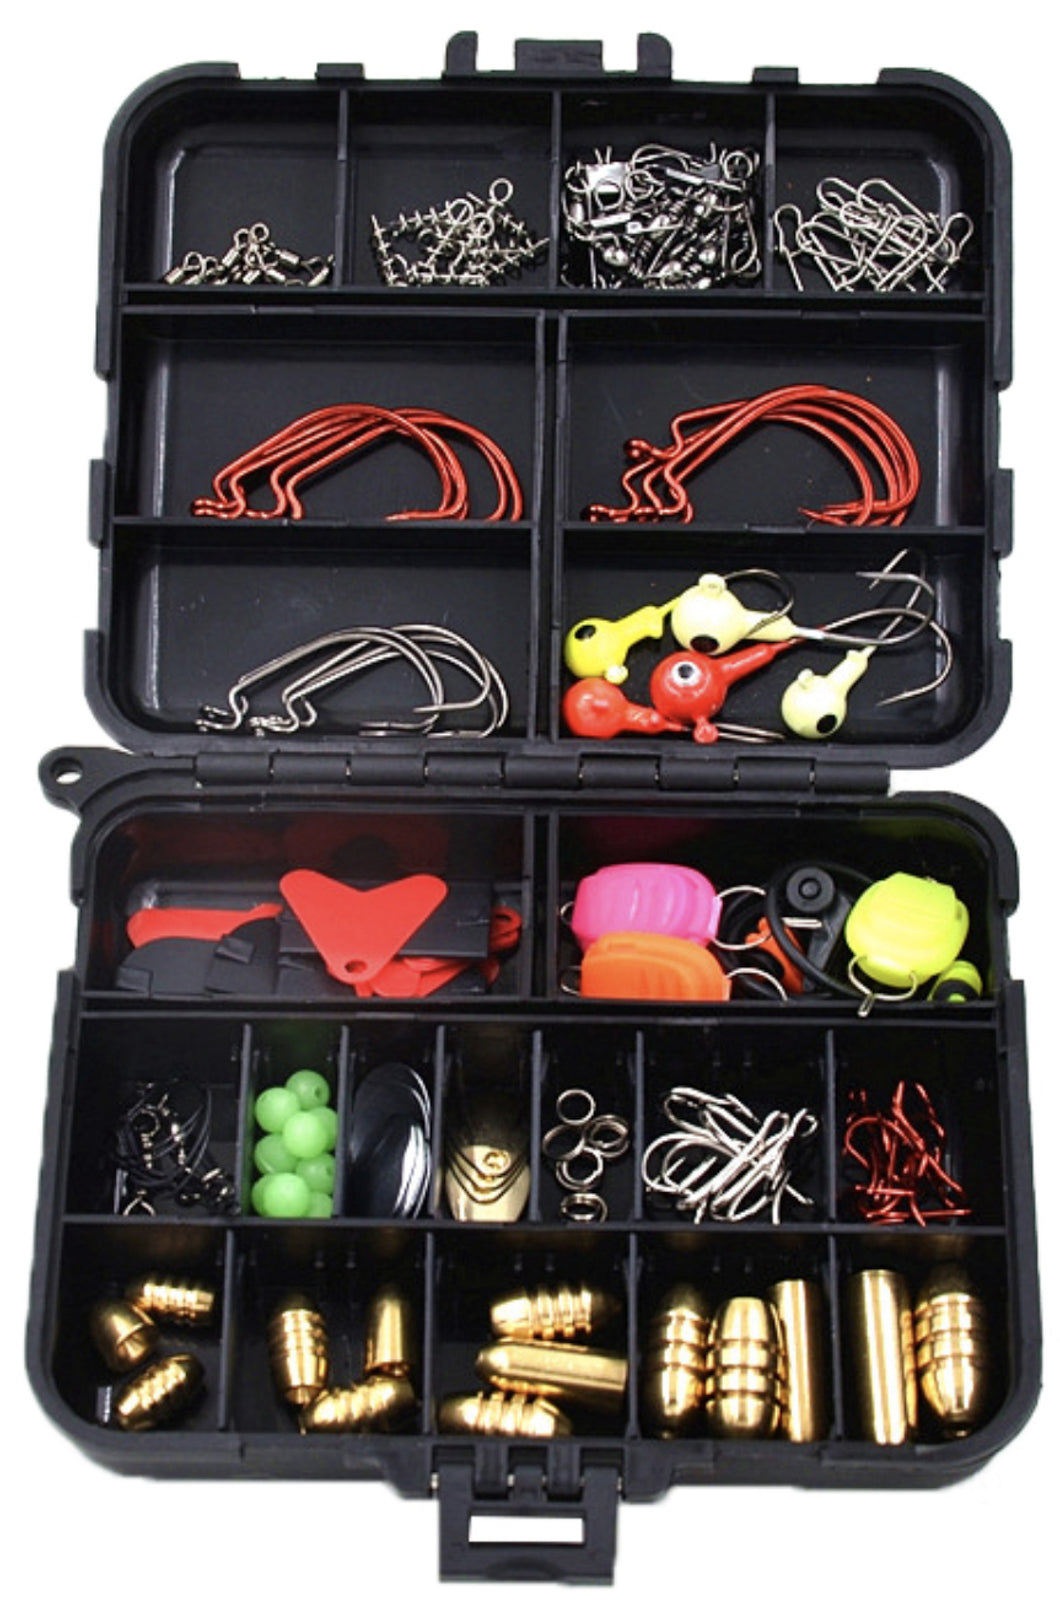 Rock 135 Accessories 128Pcs 135 Kit Hard Soft Bait Lure Fishhooks Tools Tackle Box Set for Saltwater & Freshwater 135 - Outdoor Panther